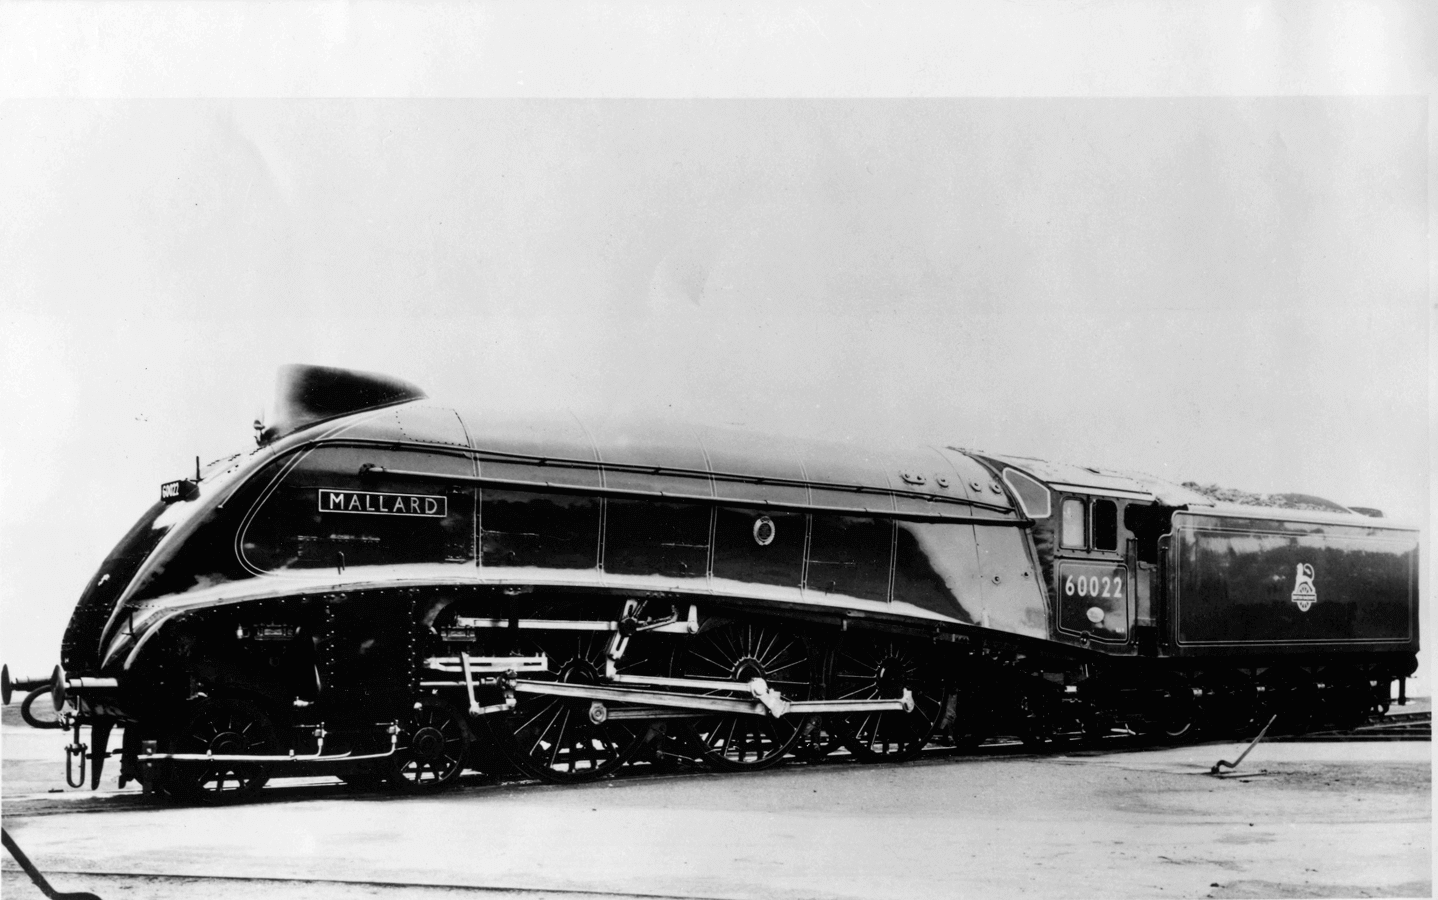 Mallard steam locomotive - has held the record of 128mph since 1938